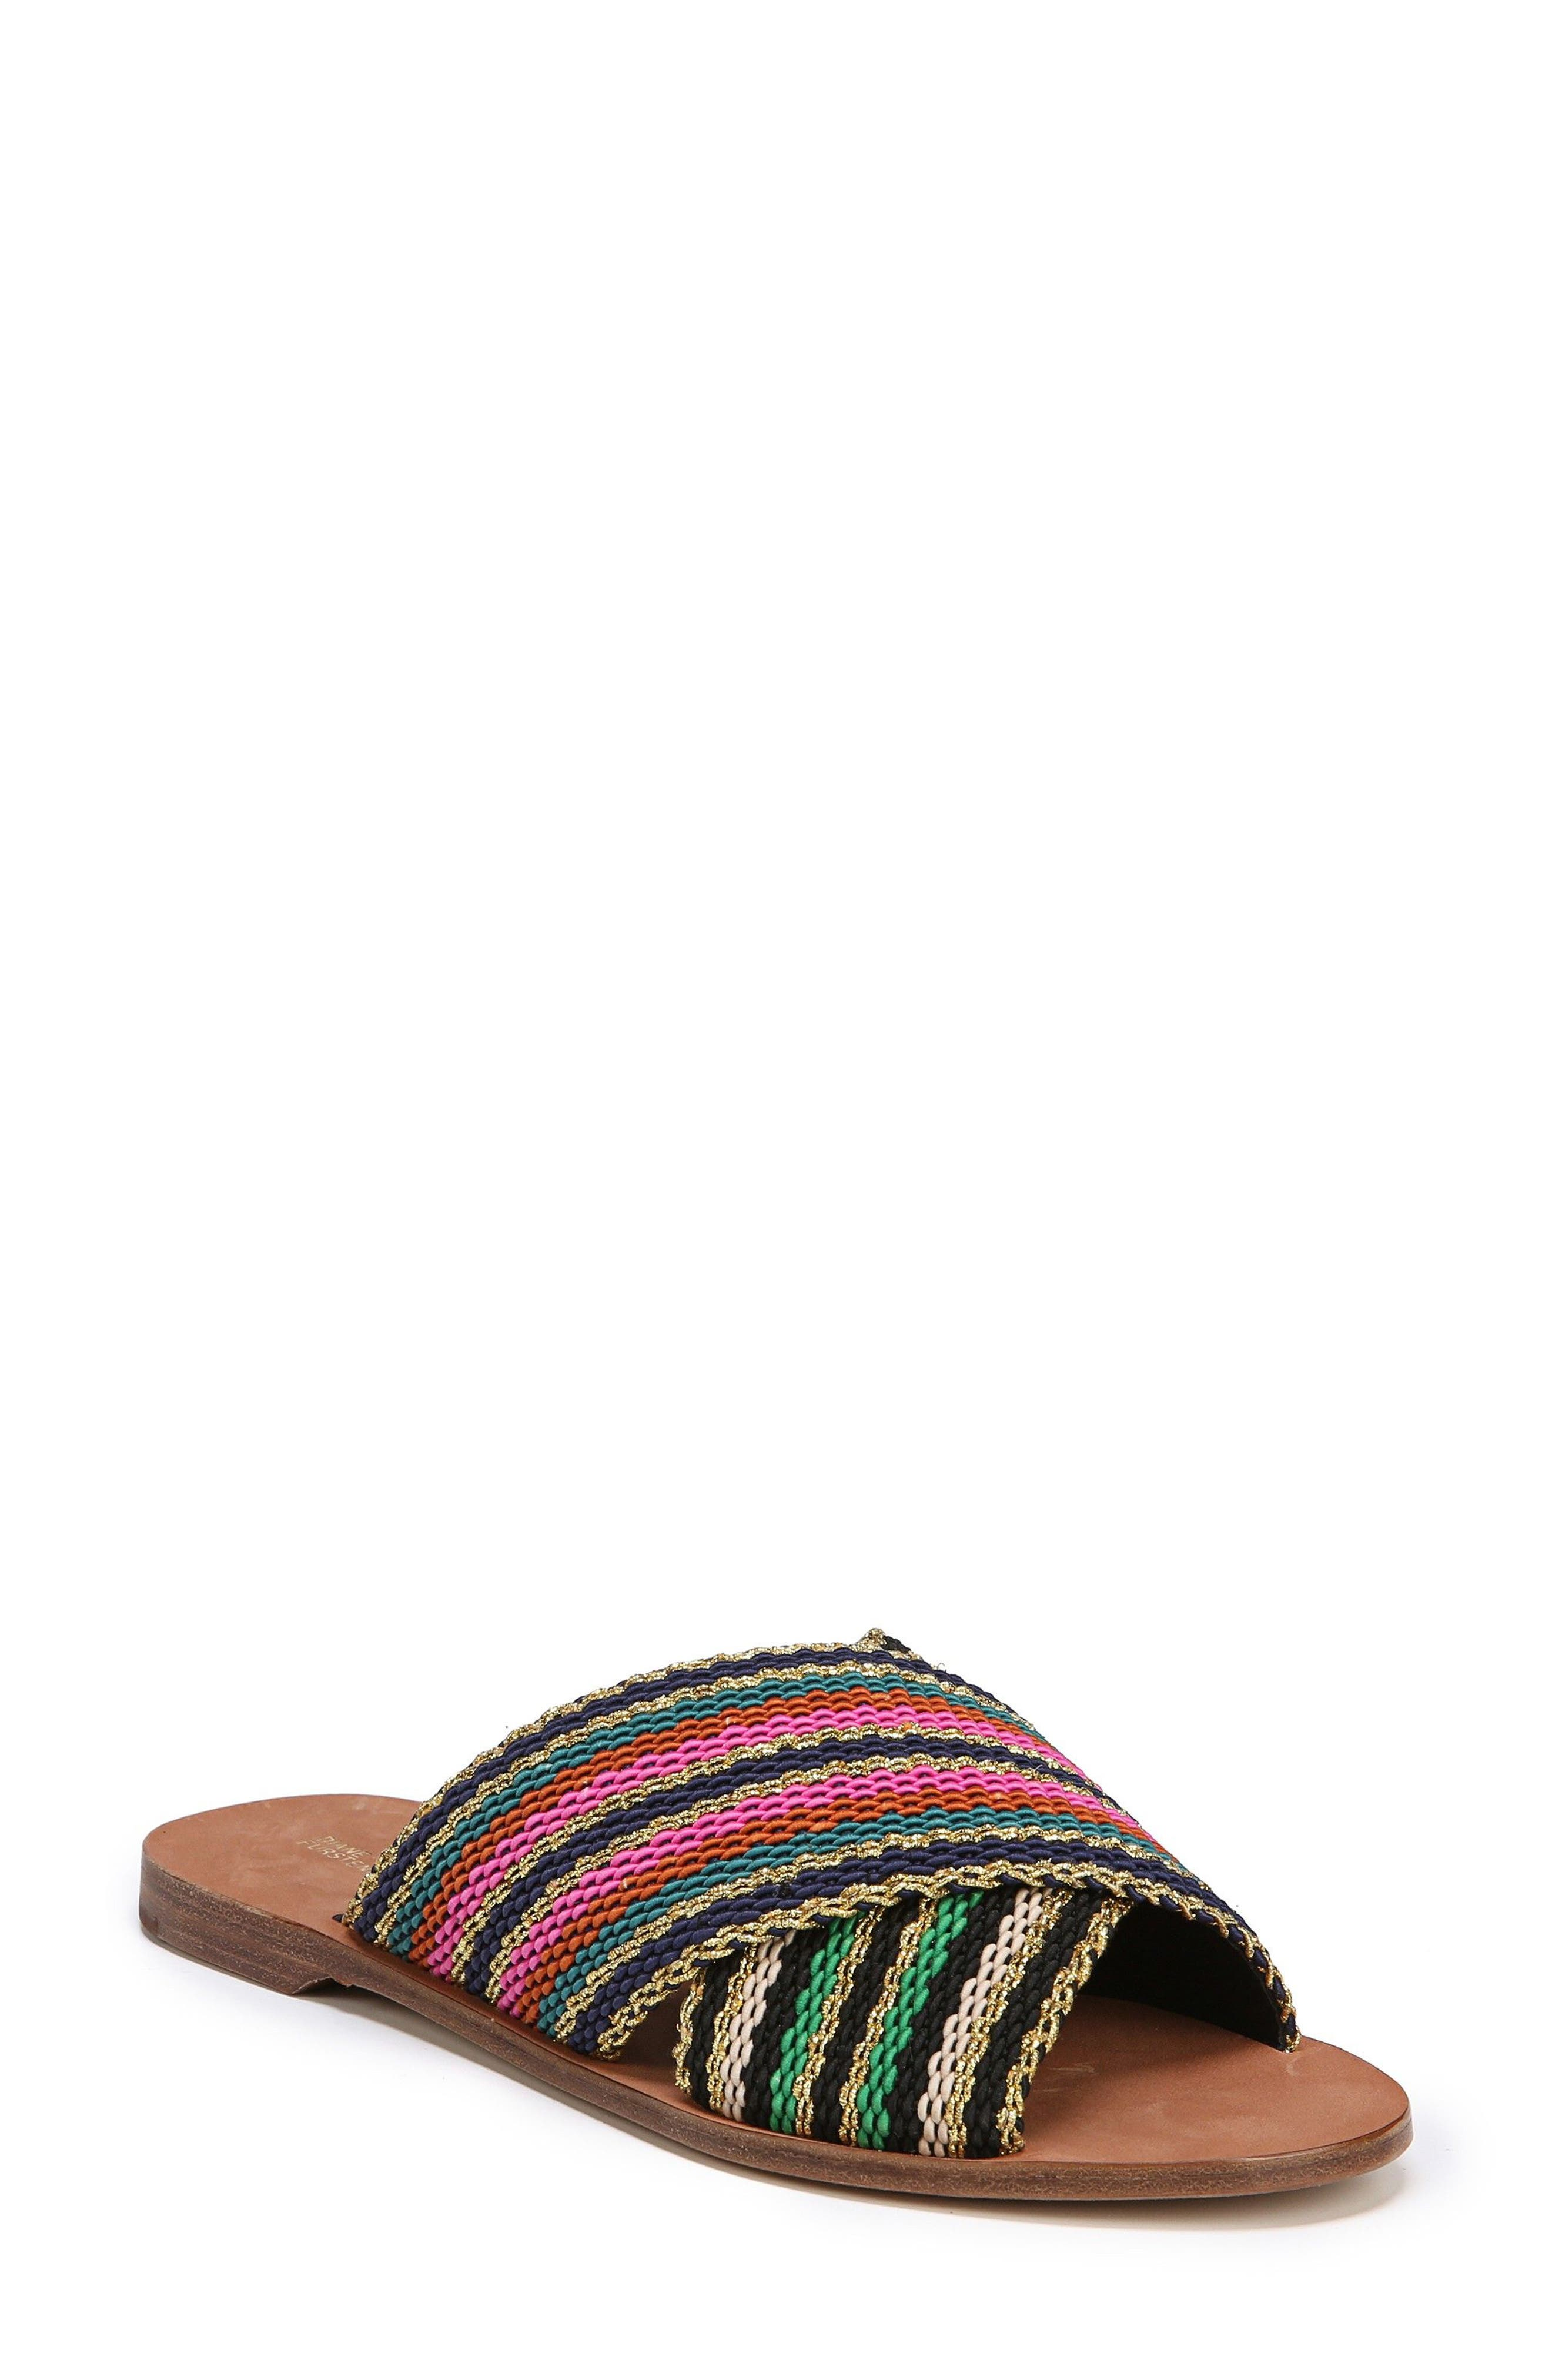 Cindi Woven Slide Sandal,                         Main,                         color, BLACK/ GOLD